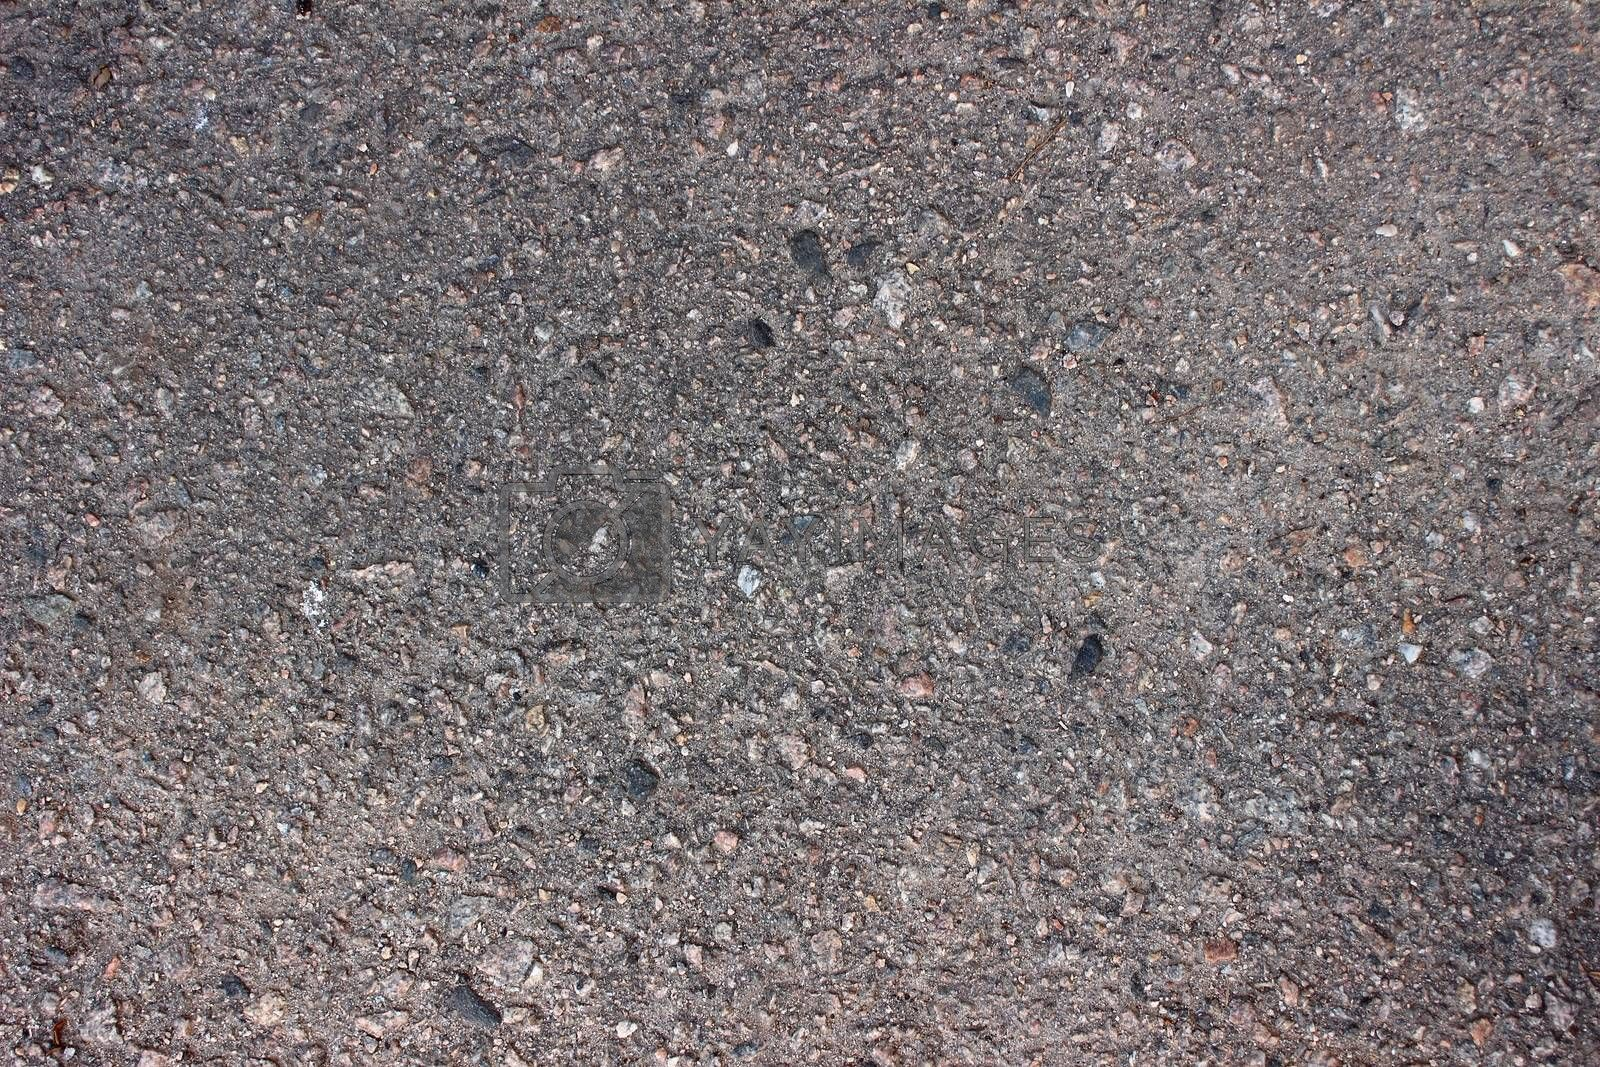 plain gray asphalt for hiking and biking